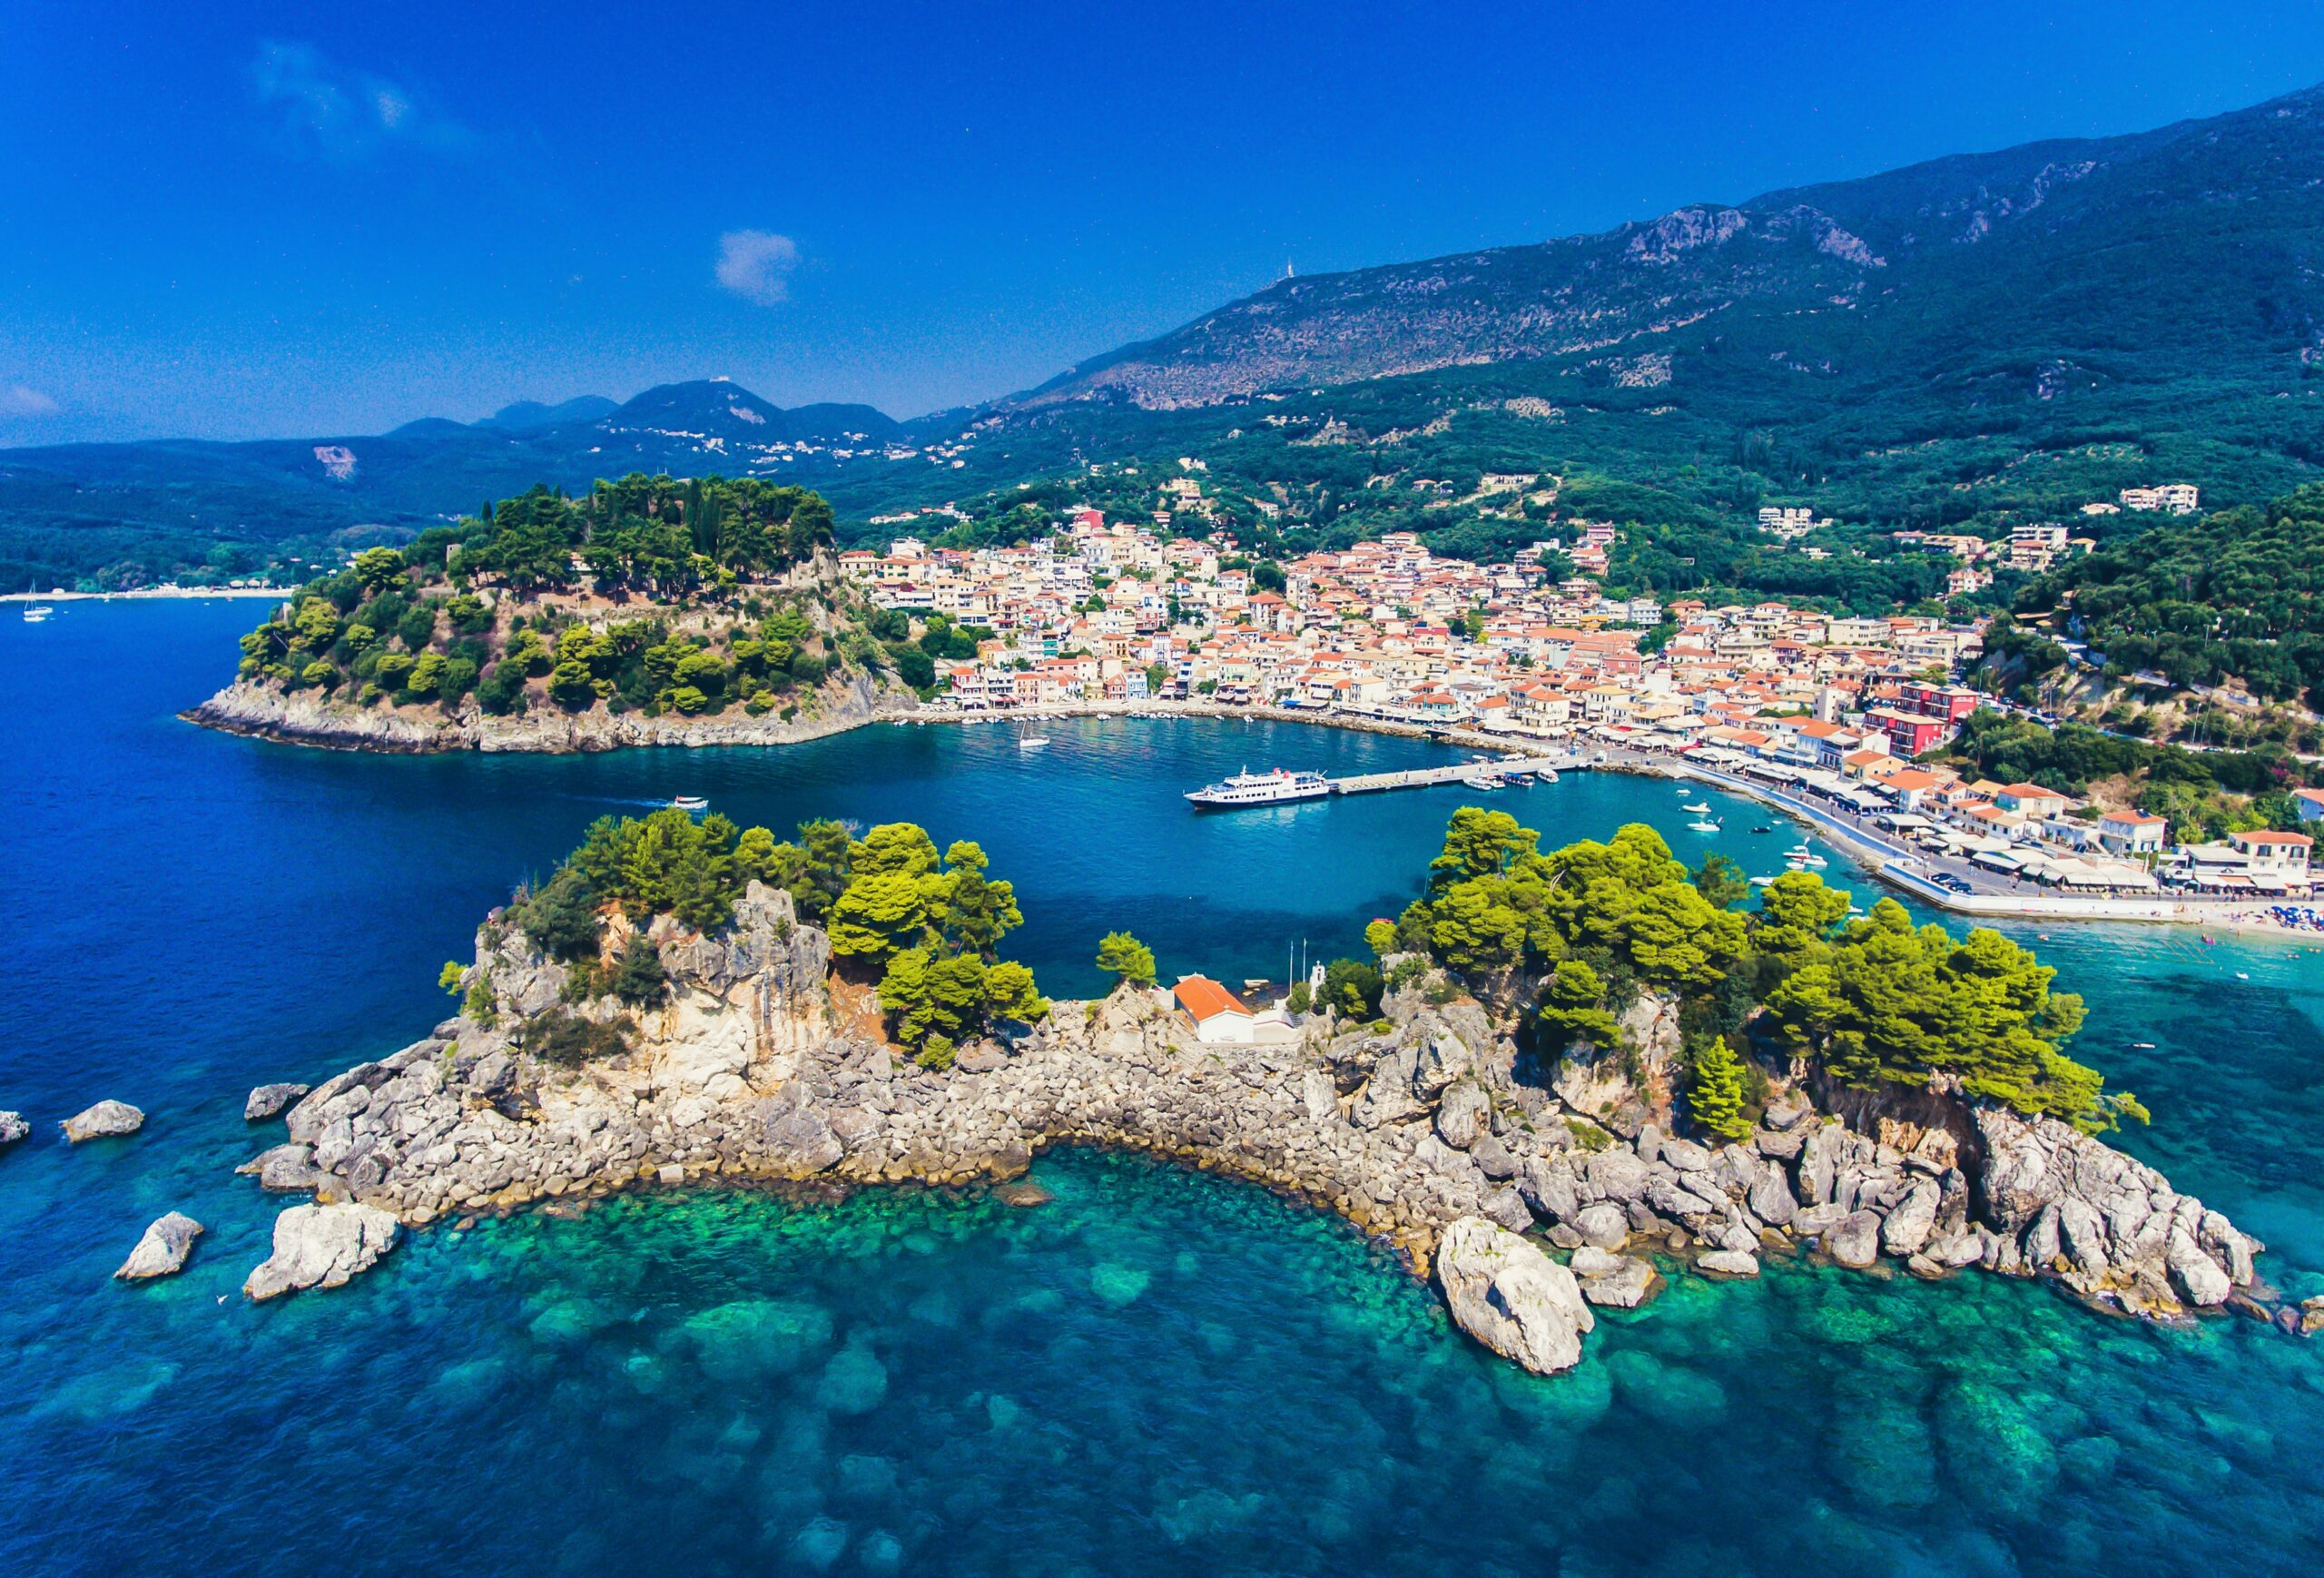 aerial view of Parga bay, blue waters and a villiage in the green mountainous terrain in Greece